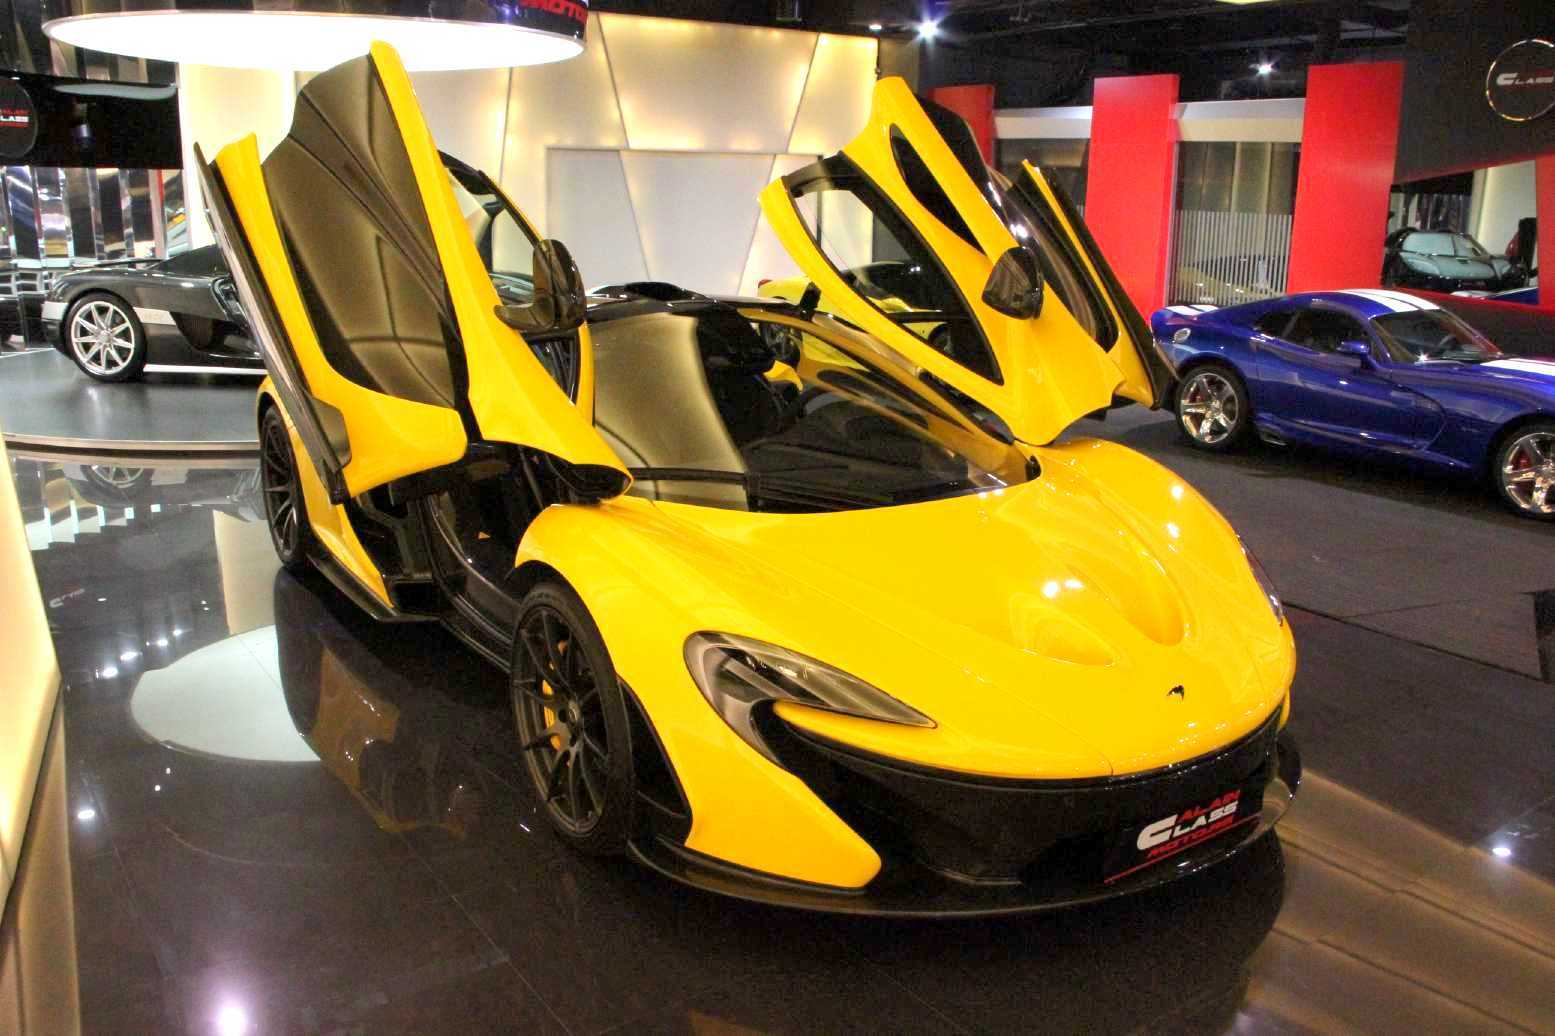 rare volcano yellow mclaren p1 for sale in dubai gtspirit. Black Bedroom Furniture Sets. Home Design Ideas